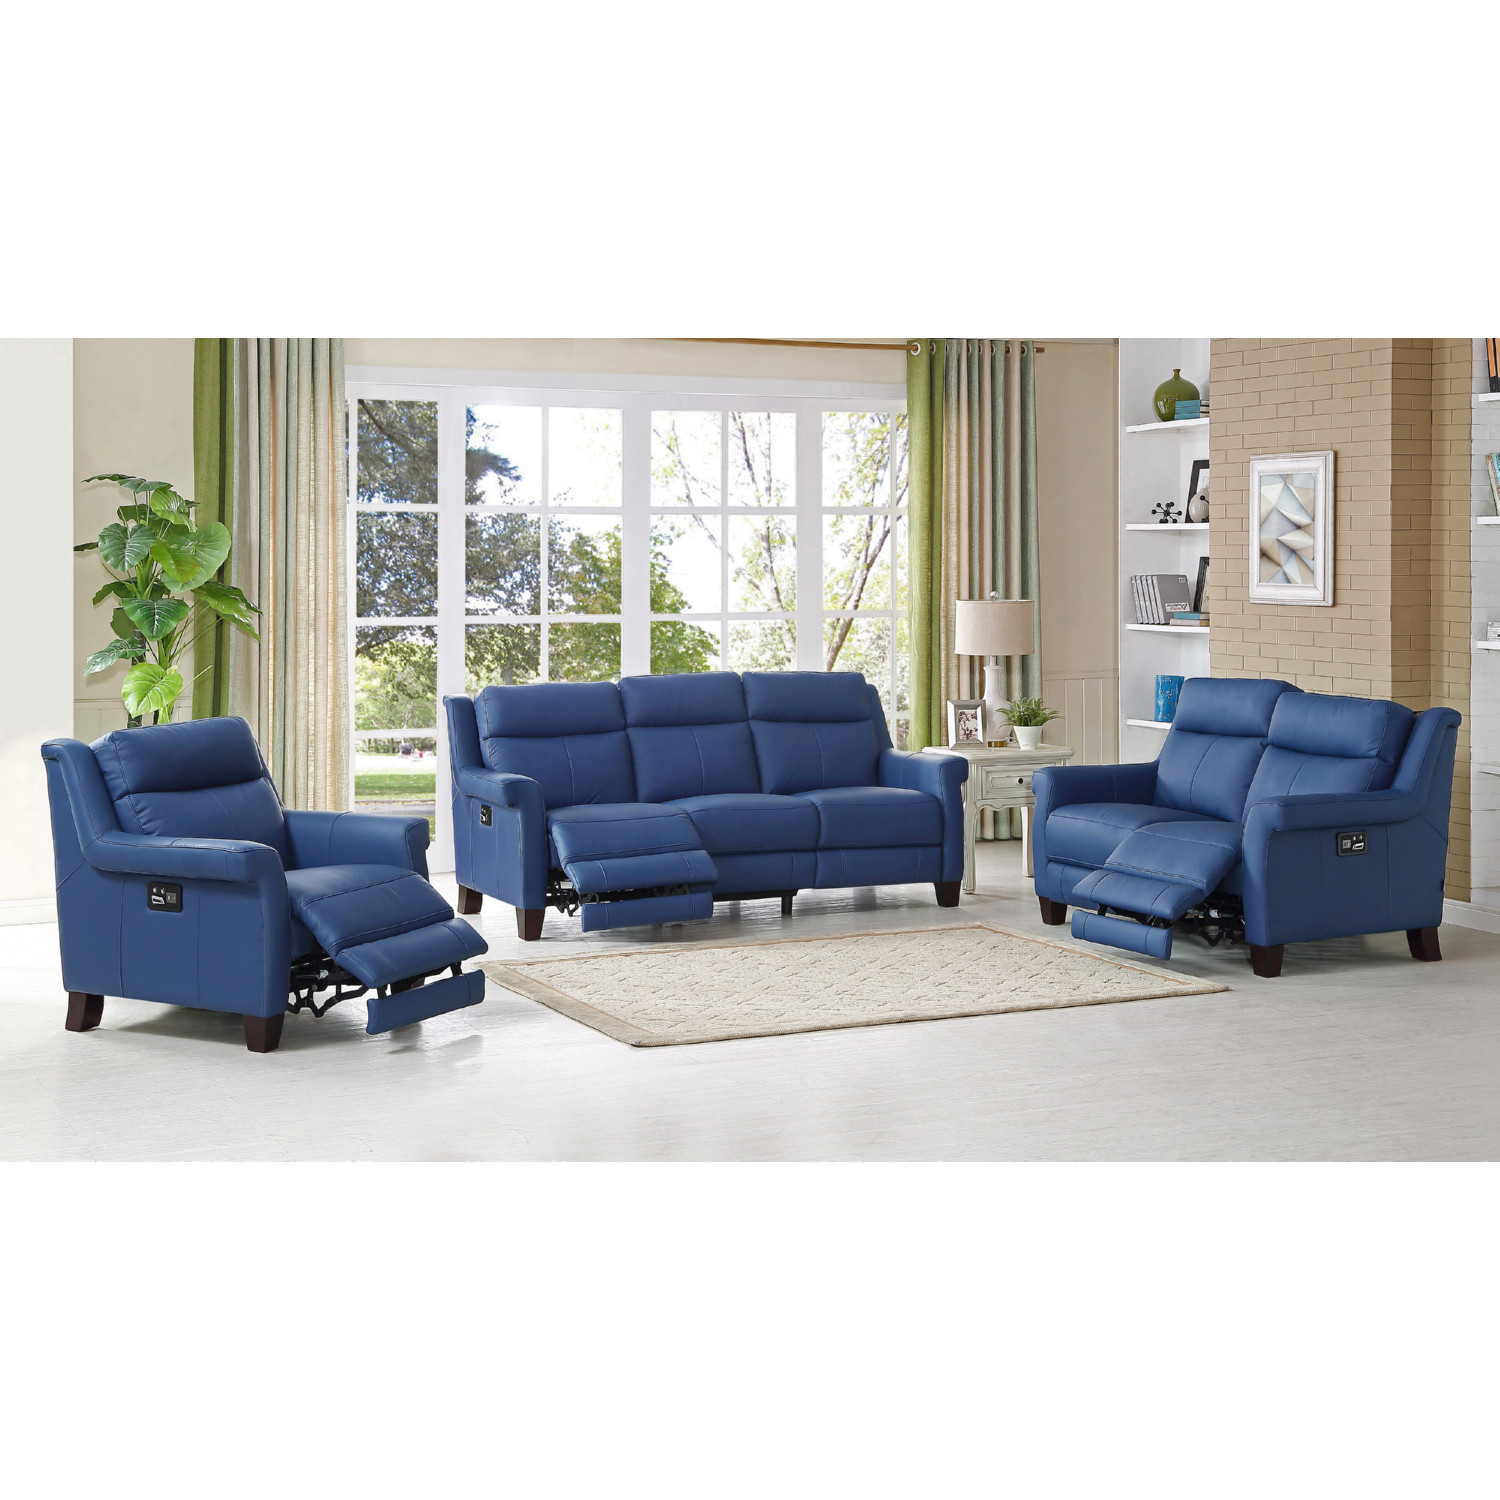 Amax Leather Dolceslc Dolce 100 Leather 3 Piece Set Power  ~ Reclining Sofa And Loveseat